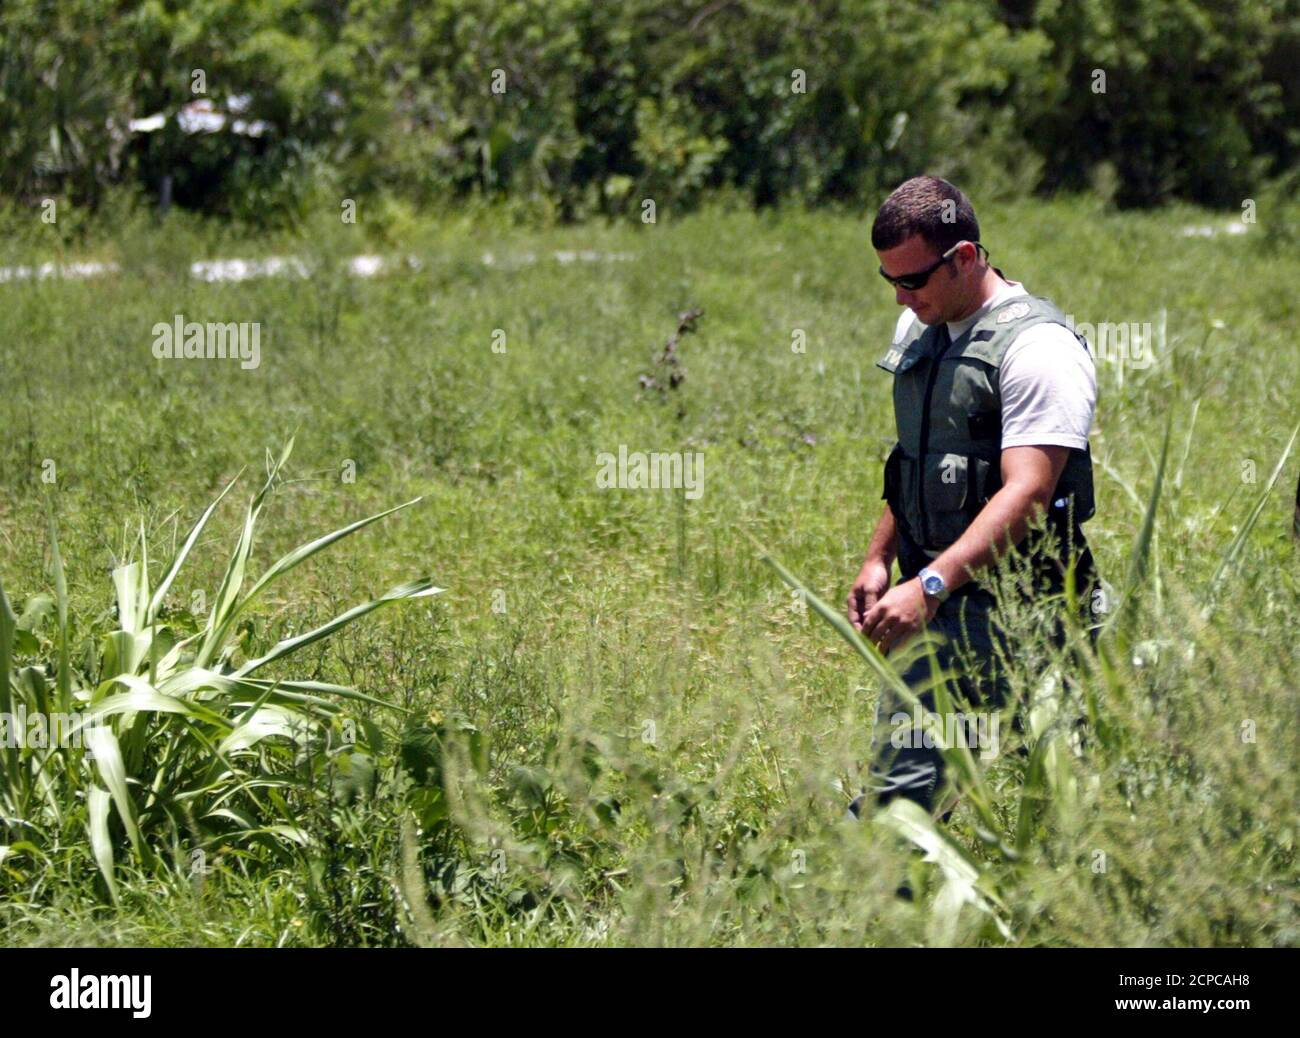 A law enforcement official from the Florida Fish and Wildlife Conservation Commission searches an area where a pet tiger escaped from a home in Loxahatchee, Florida, July 13, 2004. Declawed but not defanged, the tiger was not necessarily considered a threat to local residents, Florida Fish and Wildlife Conservation Commission spokesman Willie Puz said. REUTERS/Gary Coronado/Pool  MS Stock Photo